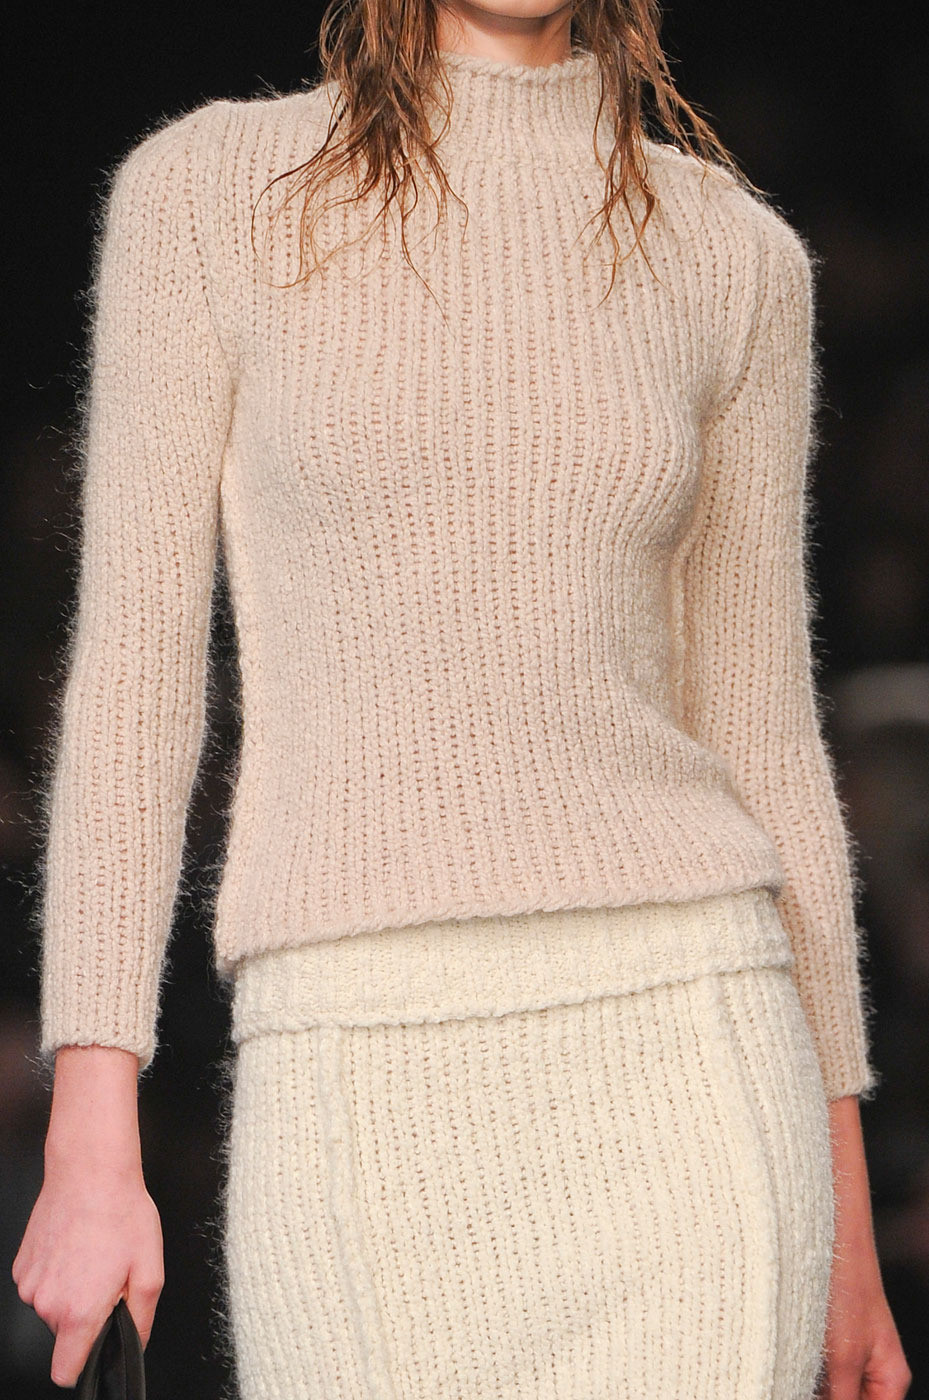 Sonia Rykiel Fall/Winter 2012